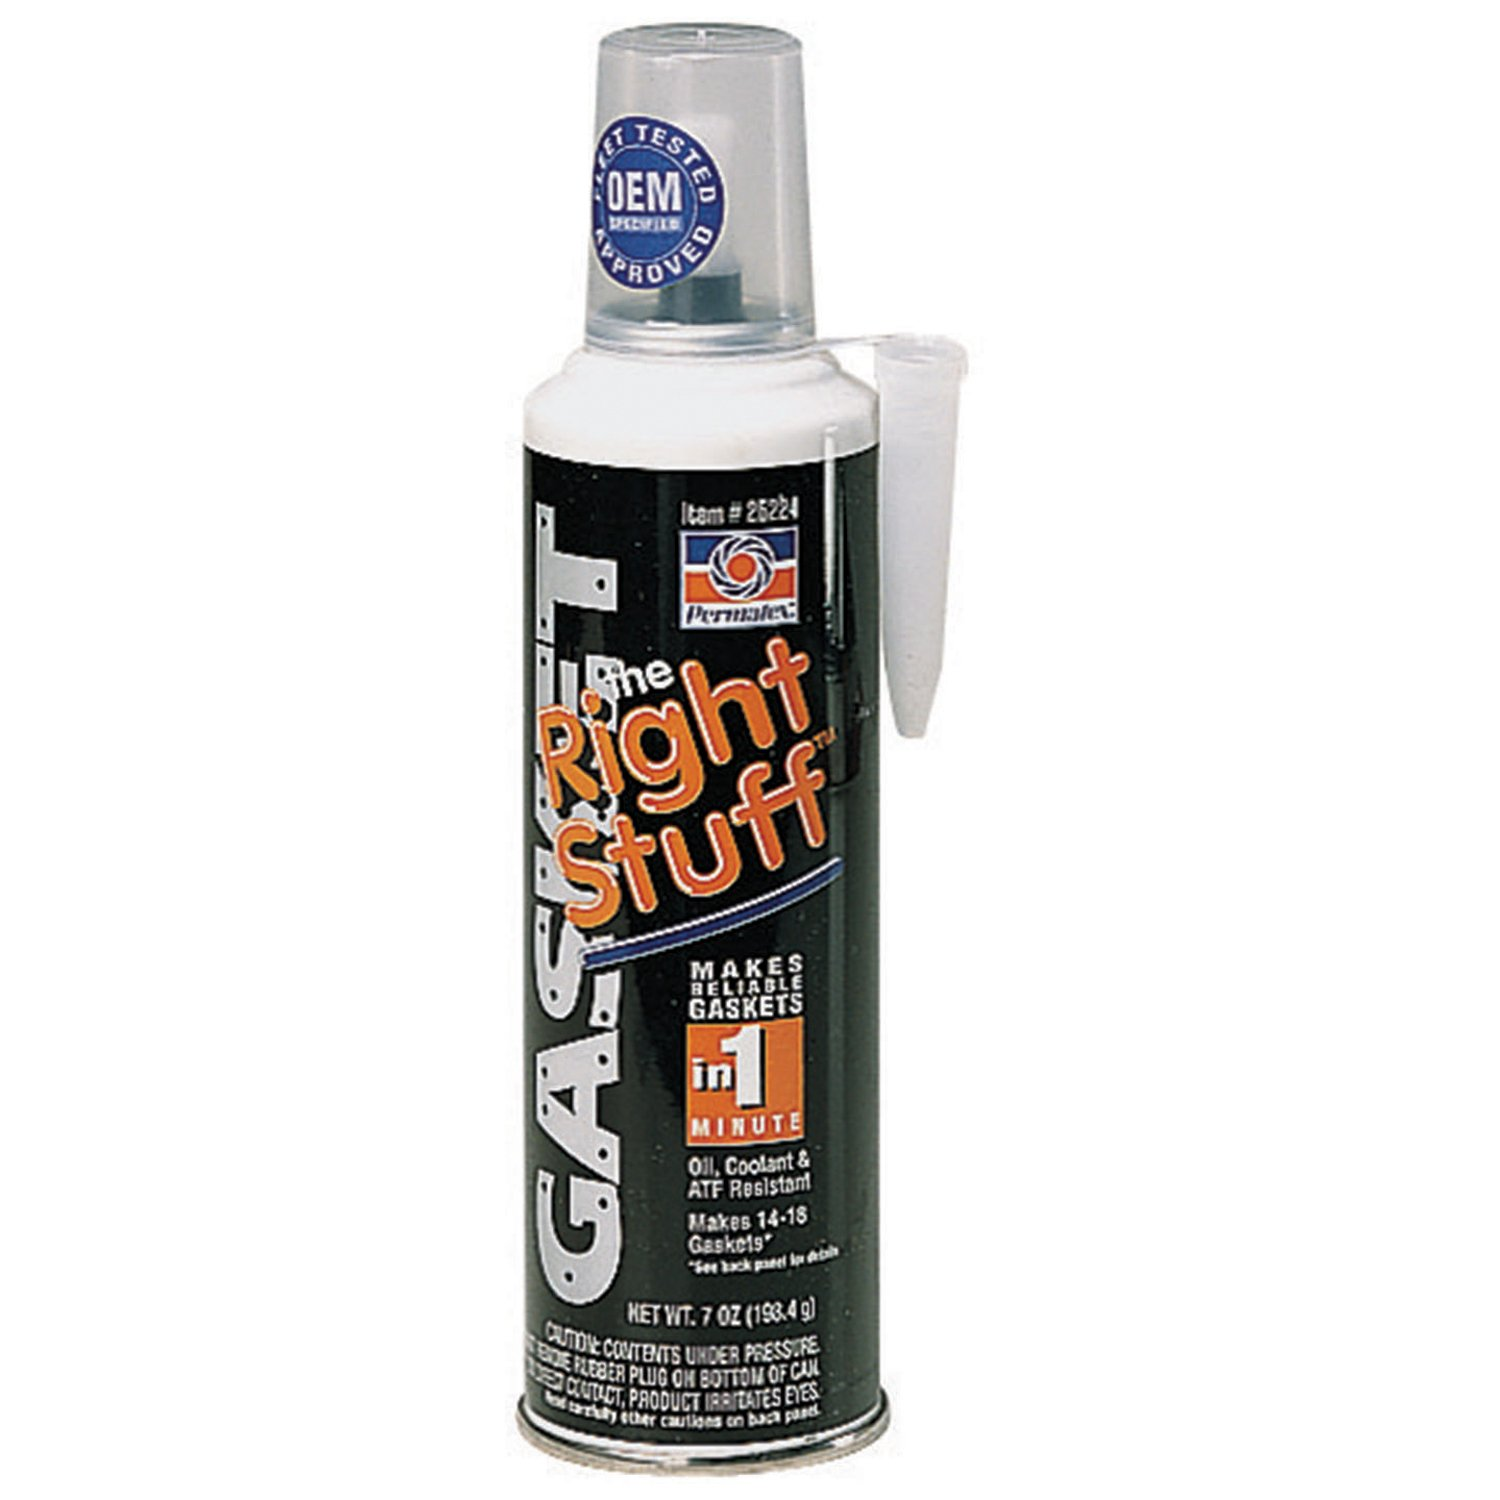 Permatex 25224-6PK The Right Stuff Gasket Maker, 7 oz. (Pack of 6)